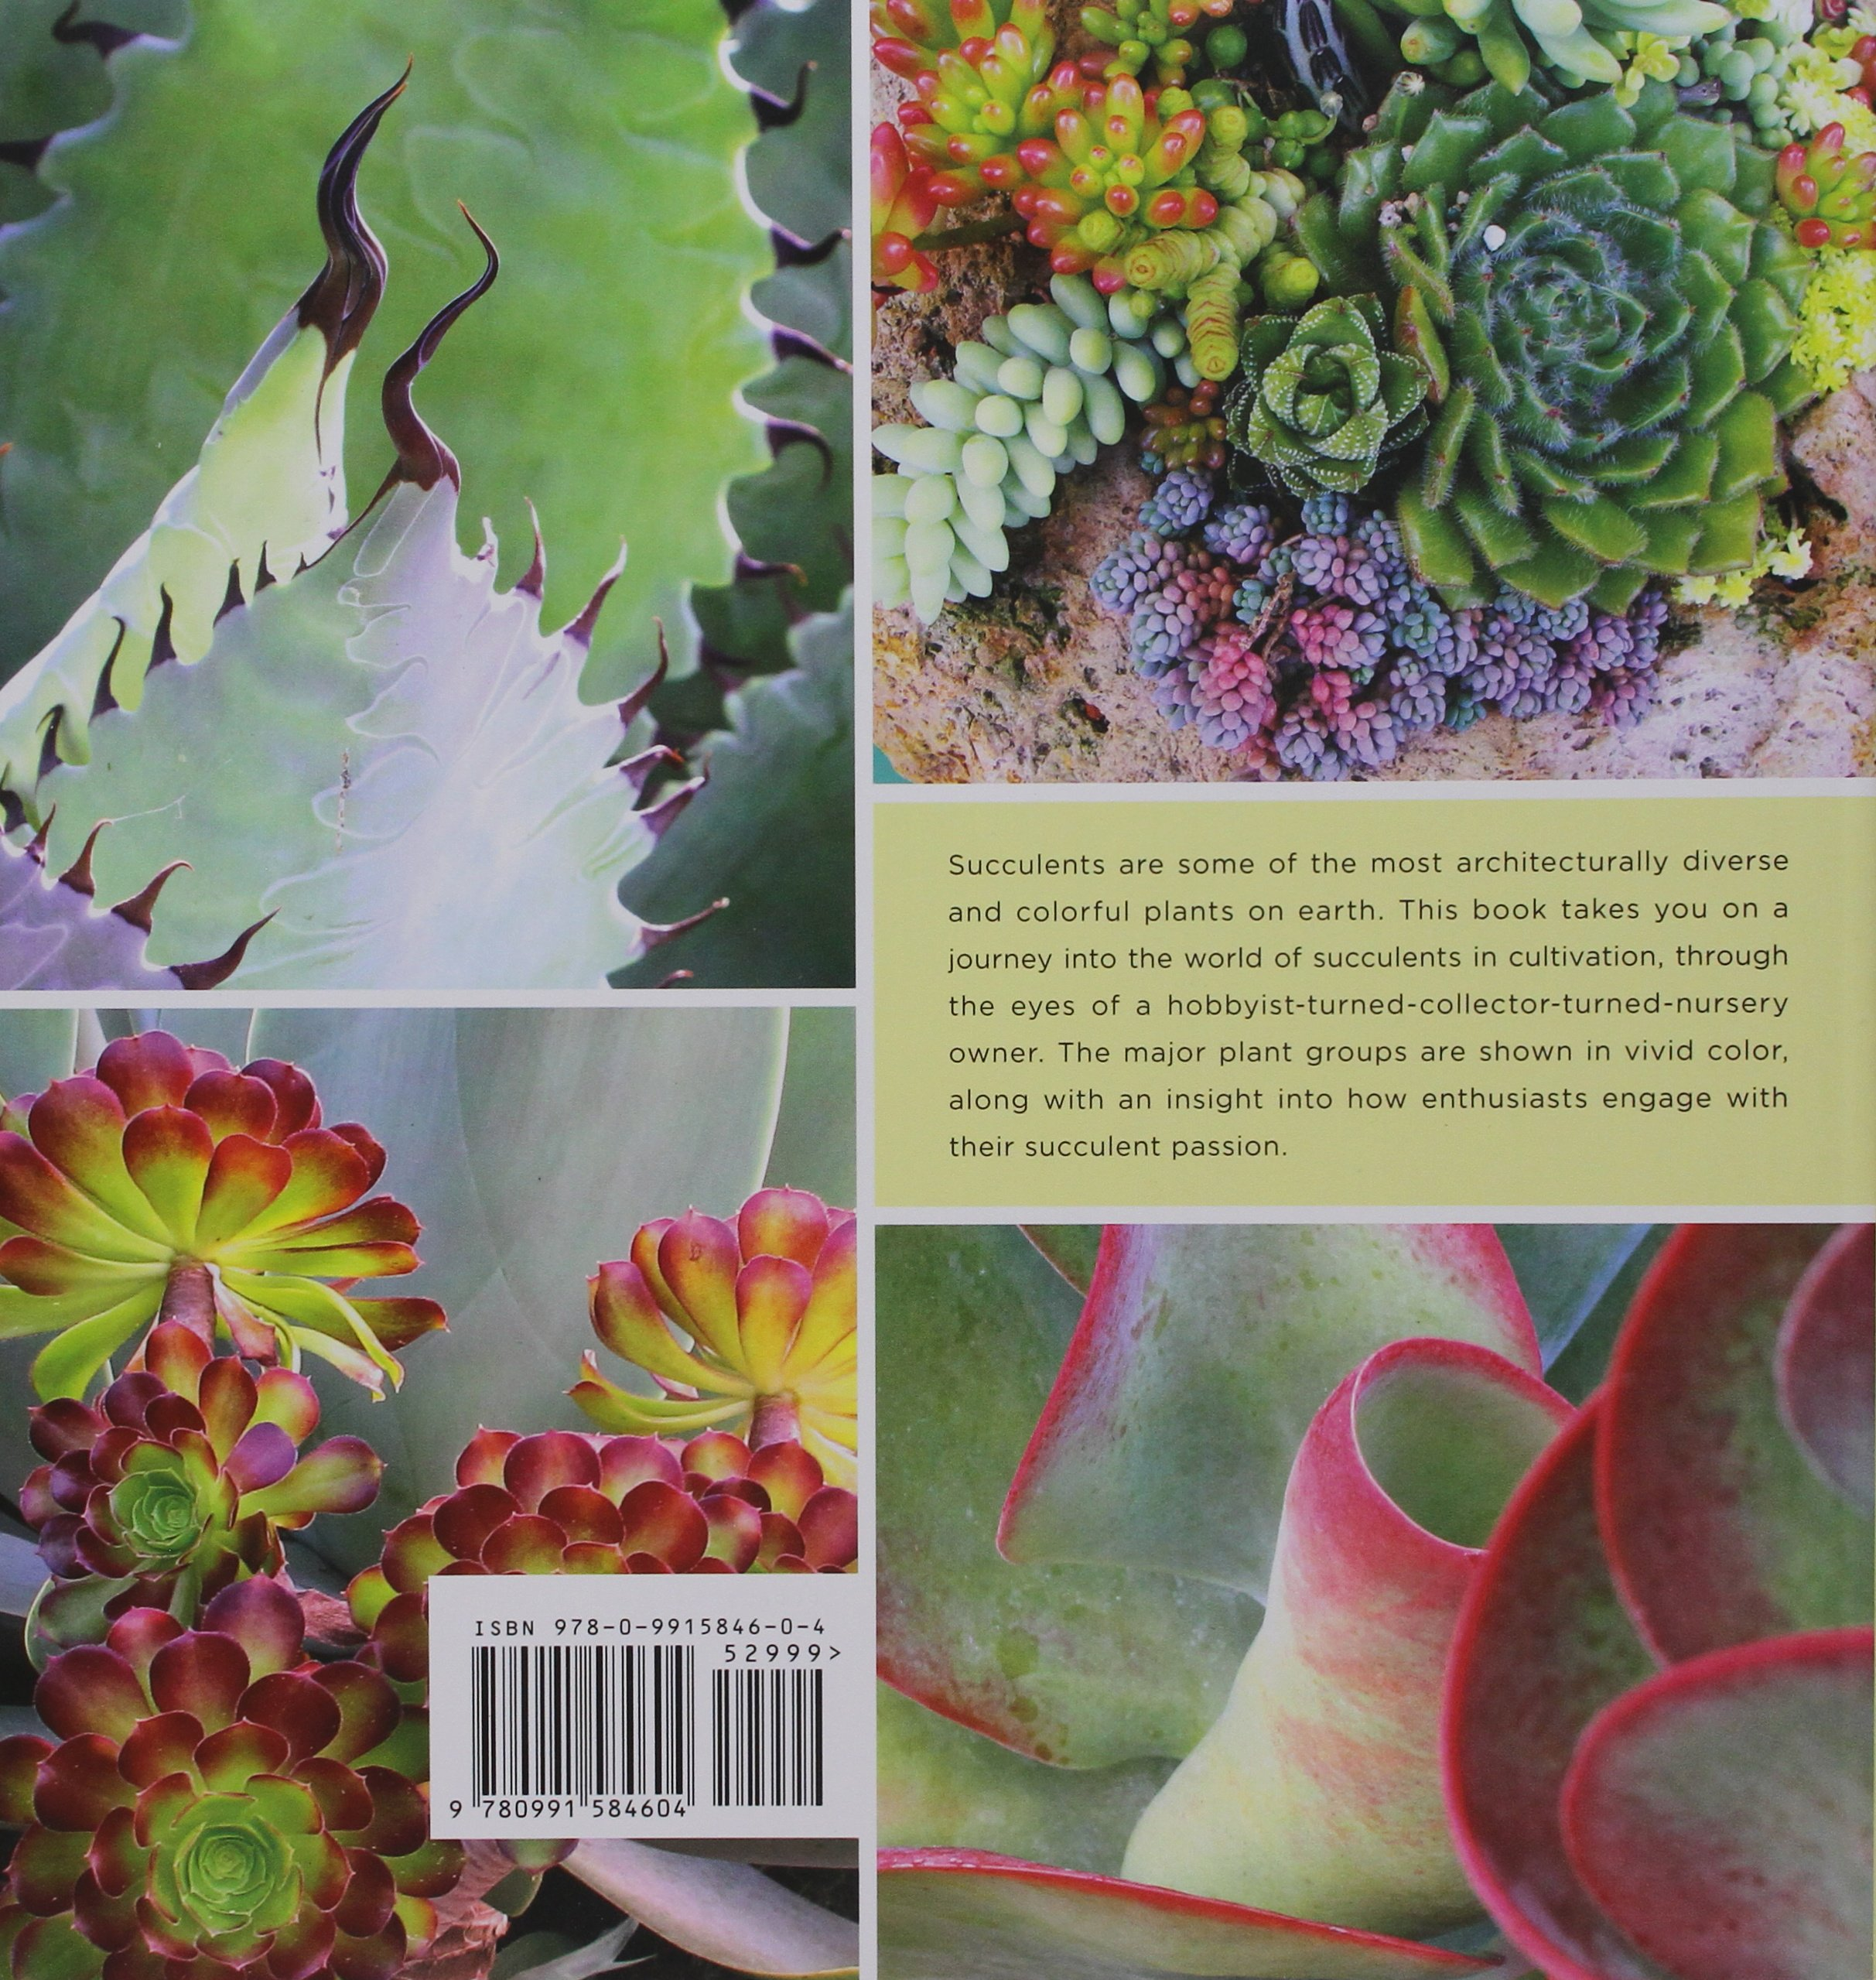 Under the Spell of Succulents: A Sampler of the Diversity of Succulents in Cultivation by Sunbelt Publications (Image #2)